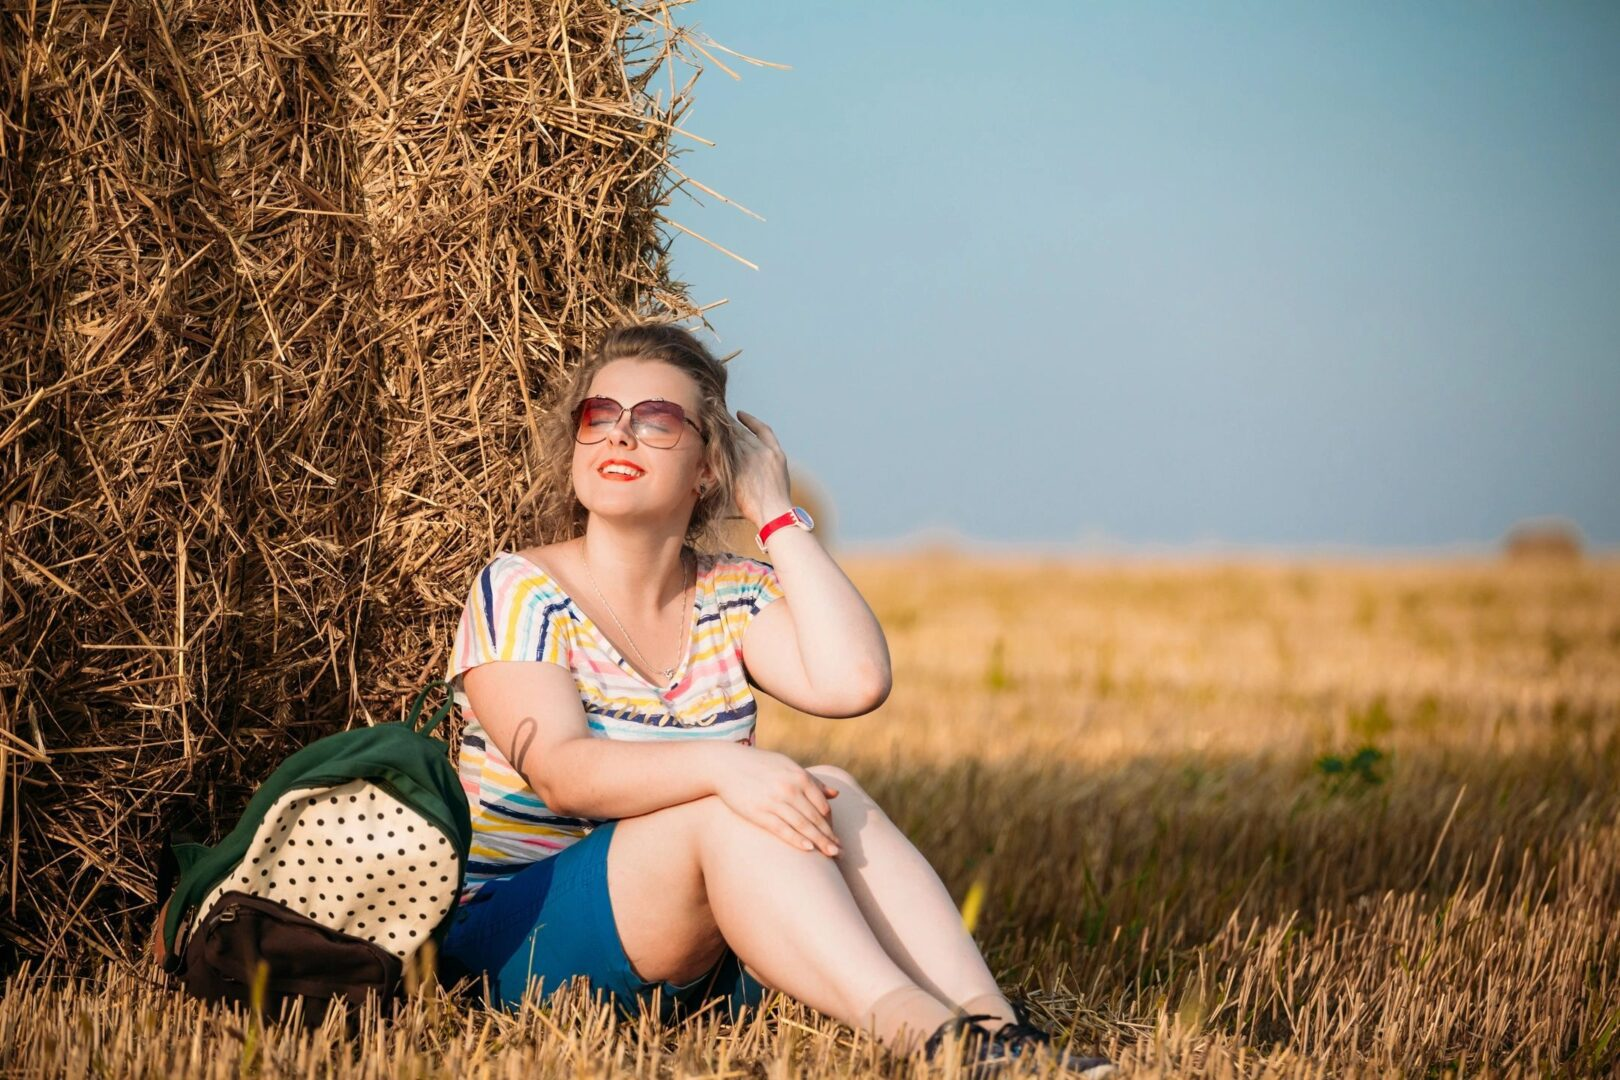 A woman sitting down and taking a picture next to hay